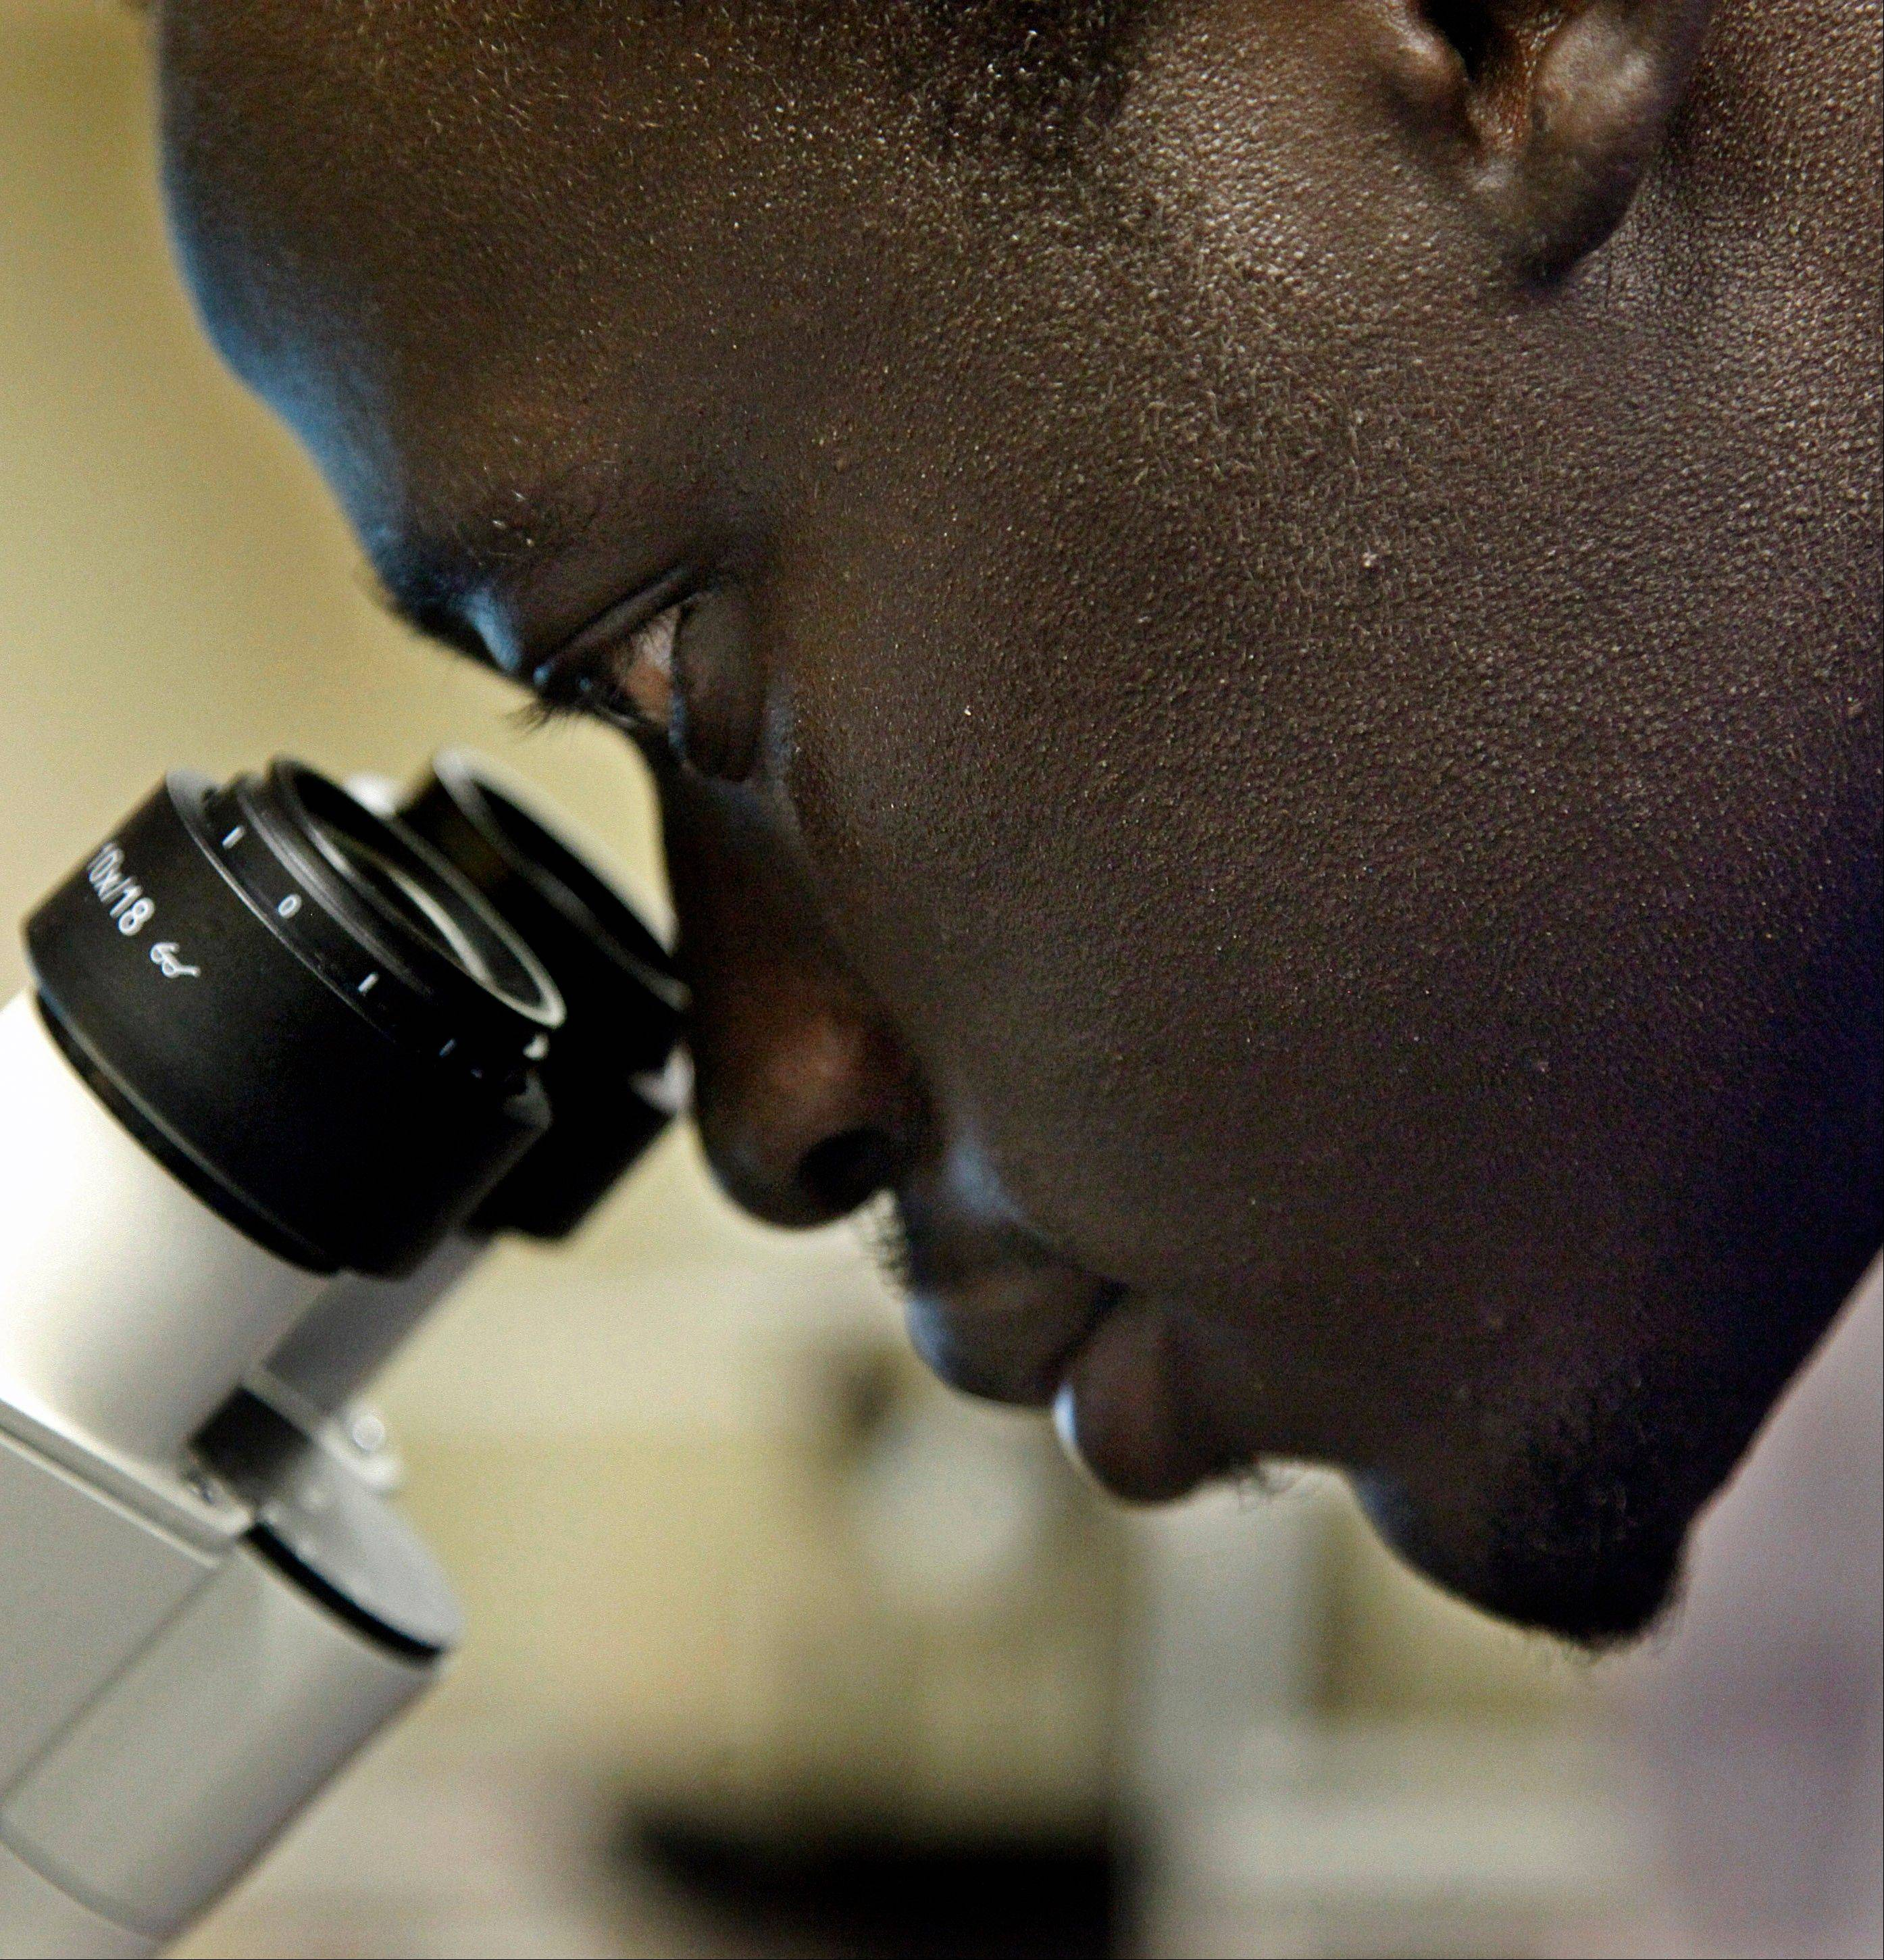 Morris Kaunda Michael, 22, a biomedical engineer, peers into a microscope at Columbia University's biomedical engineering lab in New York.